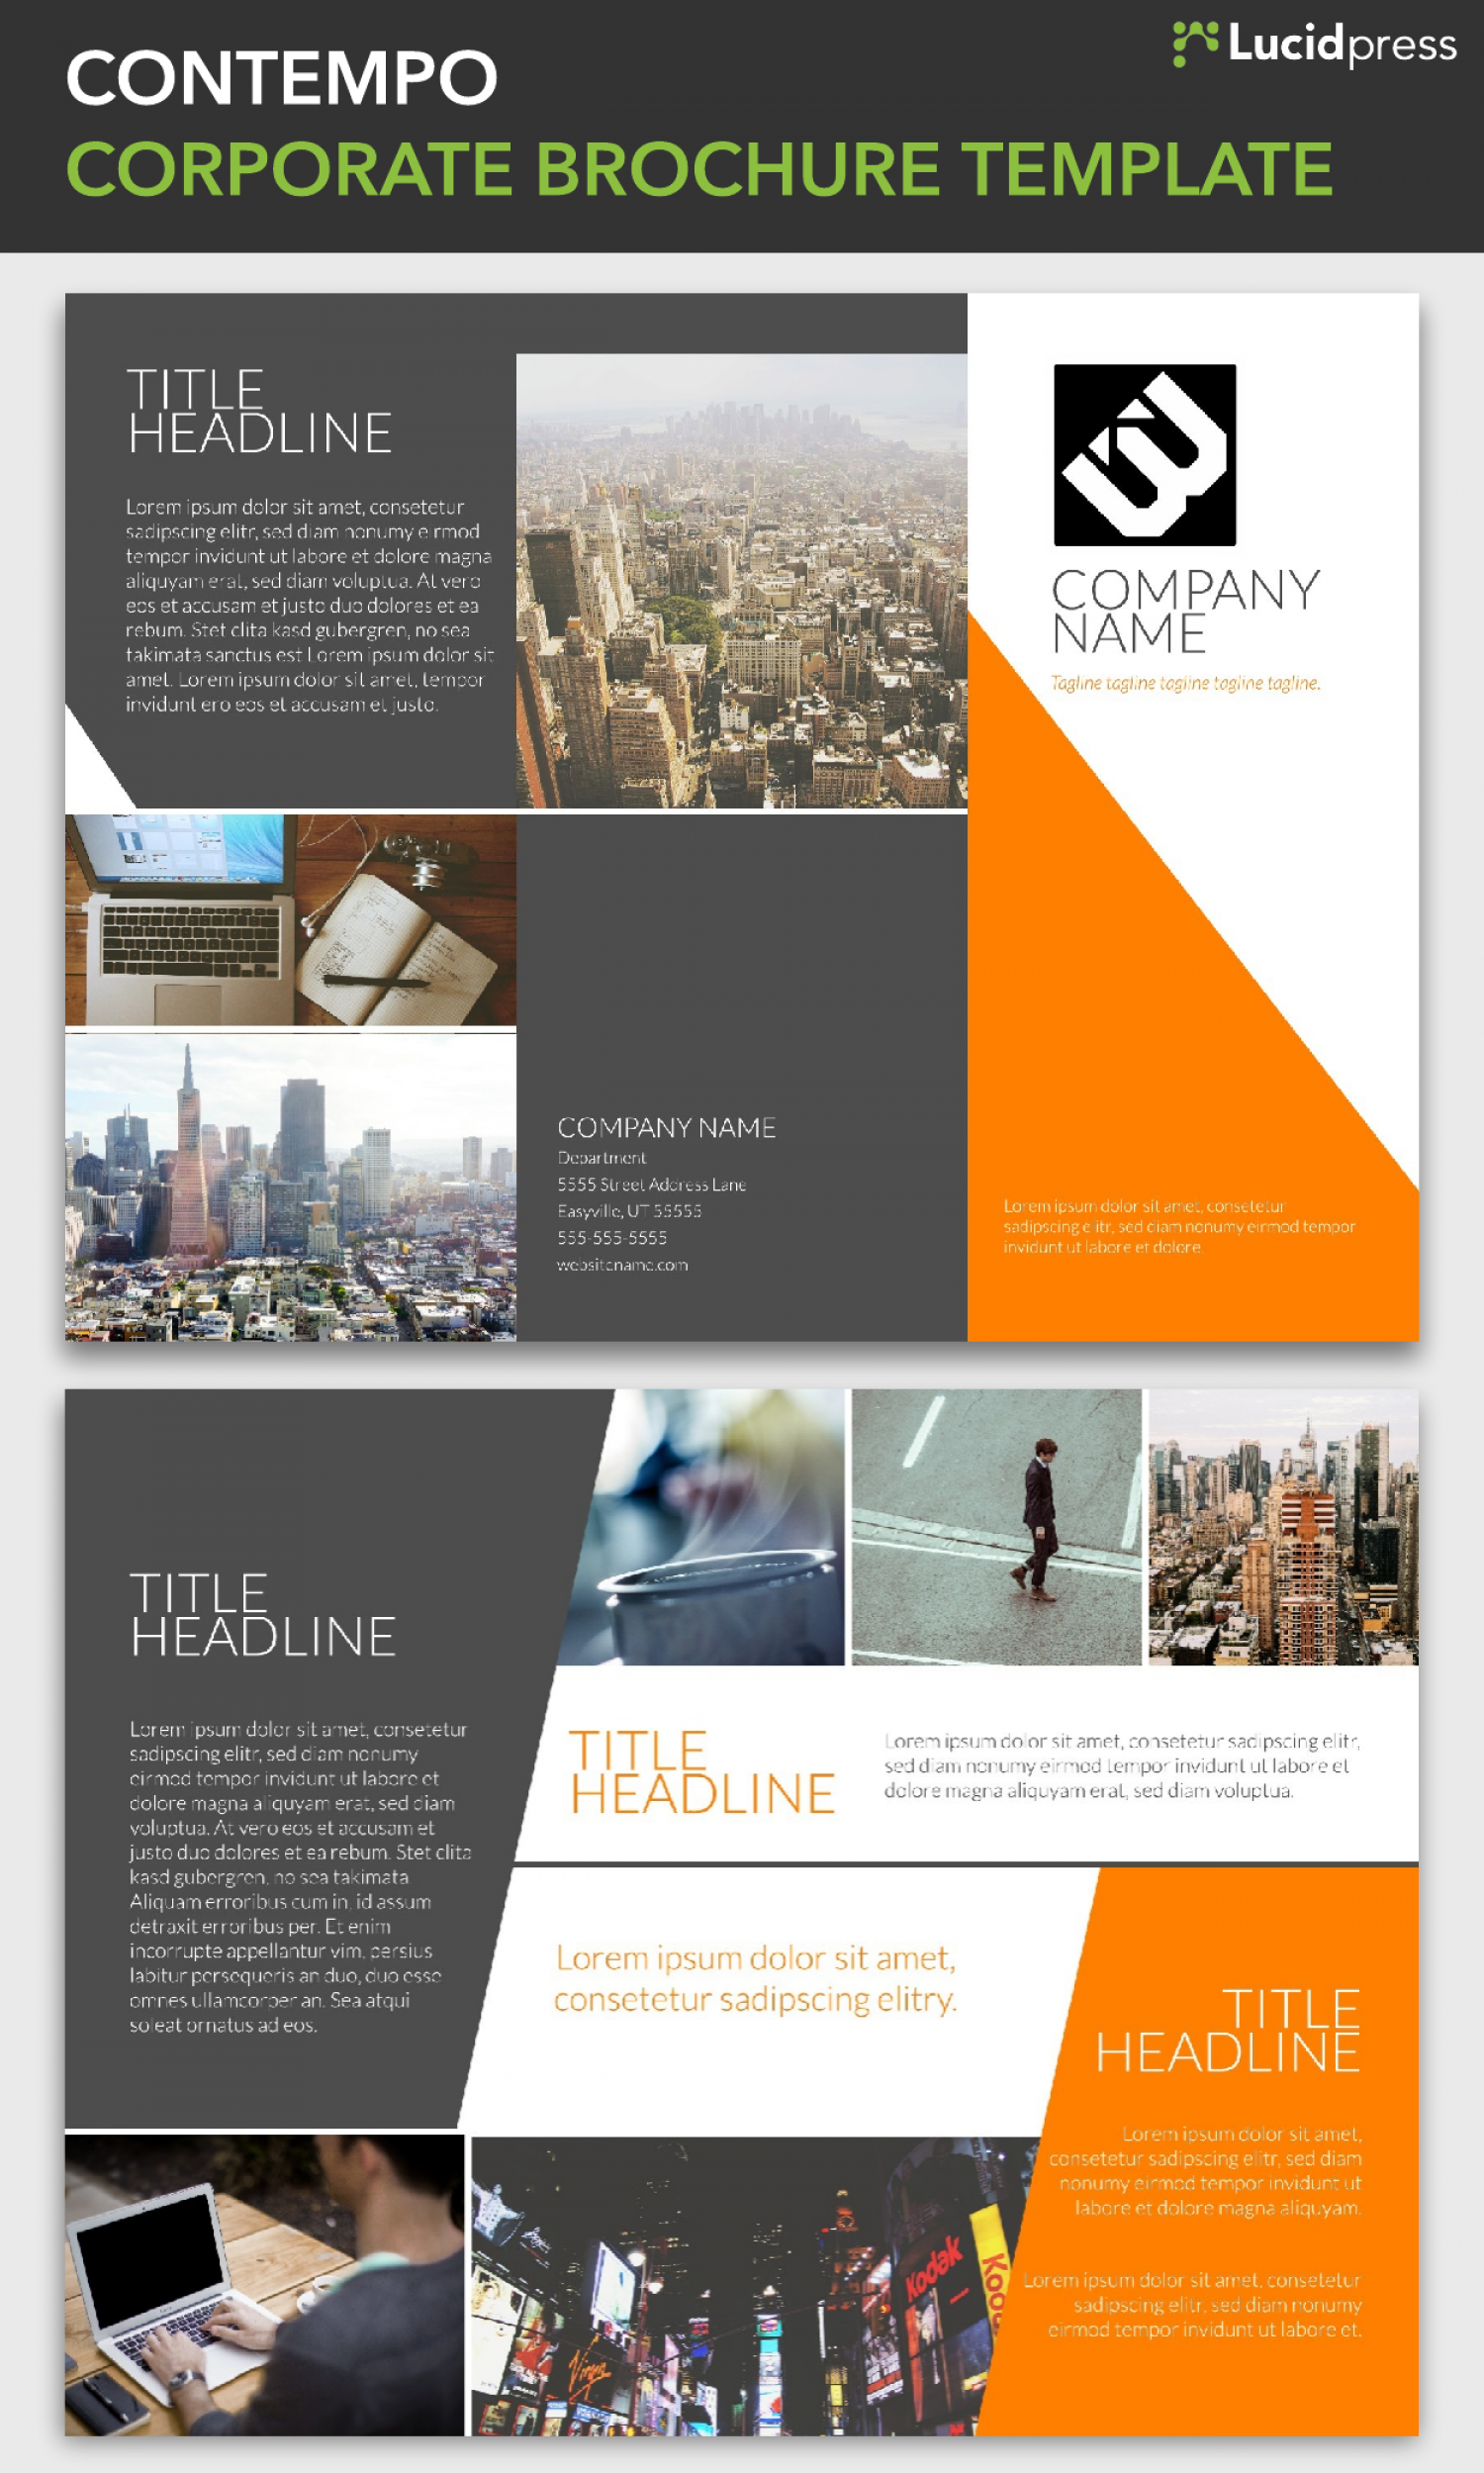 brochure template - corporate brochure template lucidpress